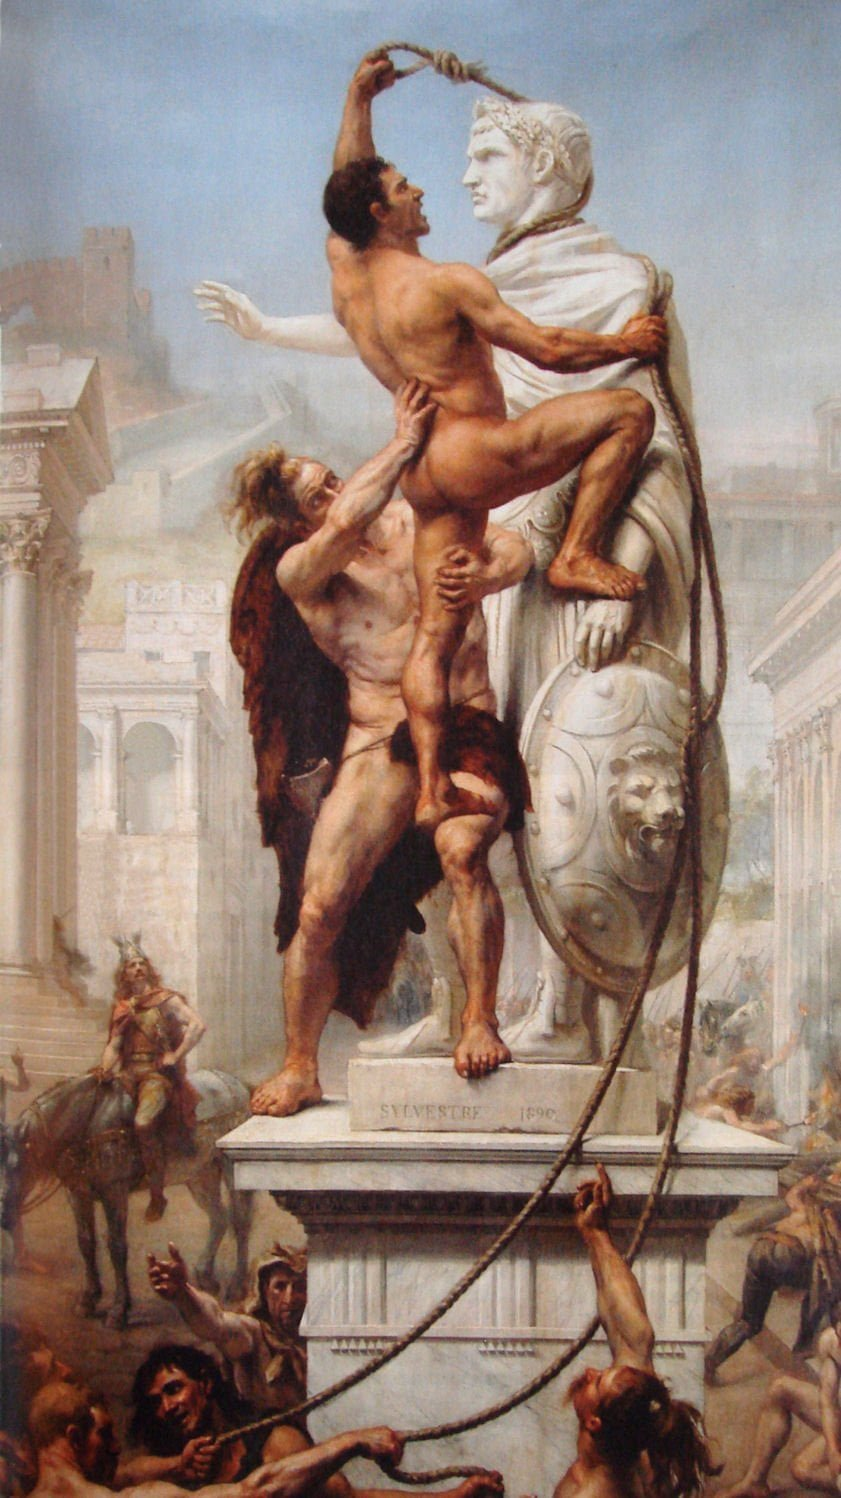 The Sack of Rome by the Barbarians in 410, Joseph-Noël Sylvestre